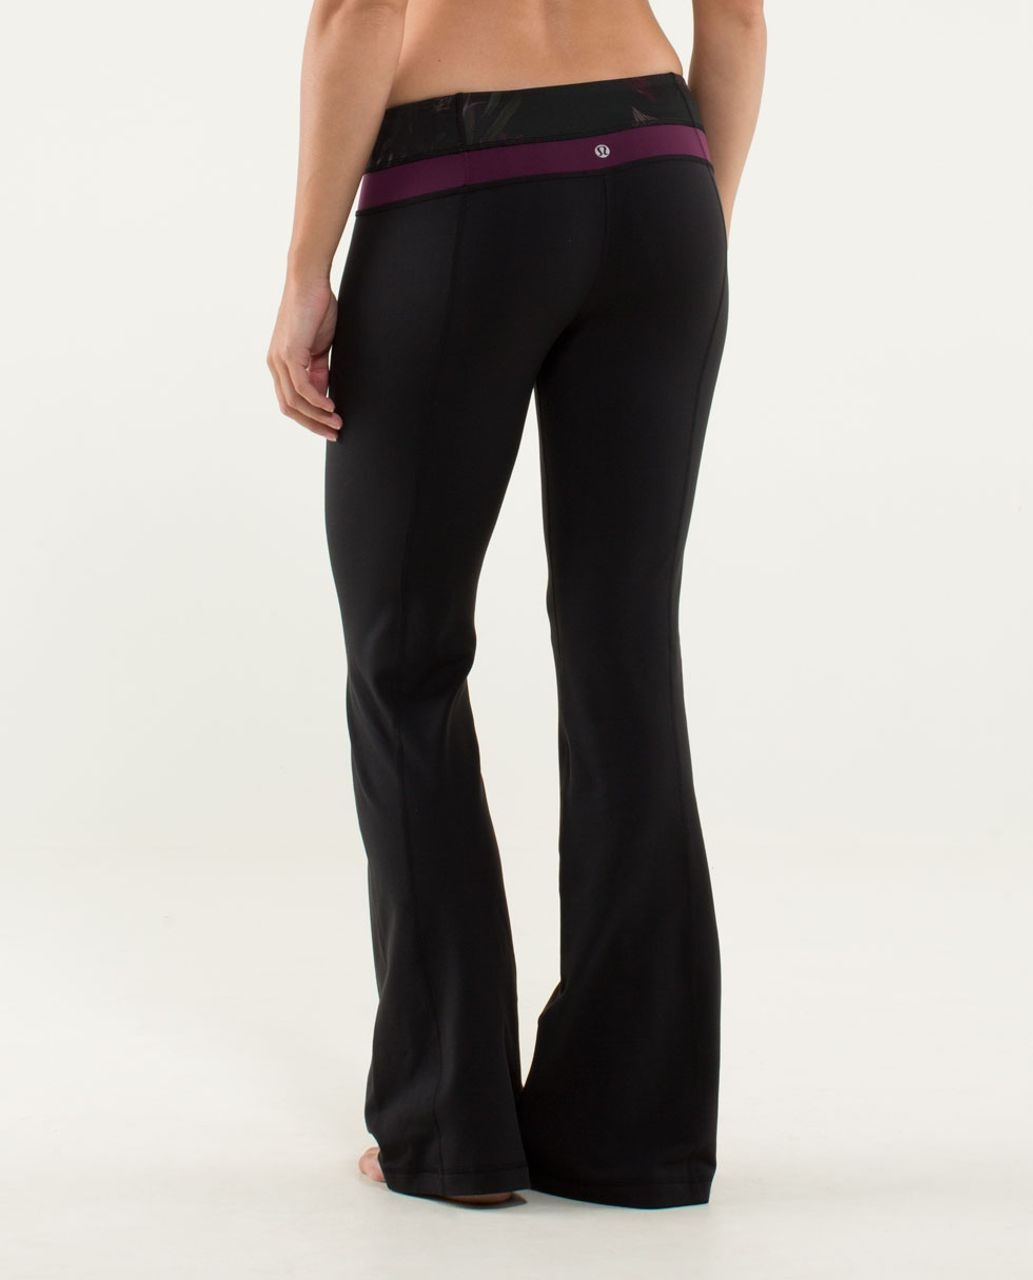 Lululemon Groove Pant (Regular) - Black / Midnight Iris Multi / Plum